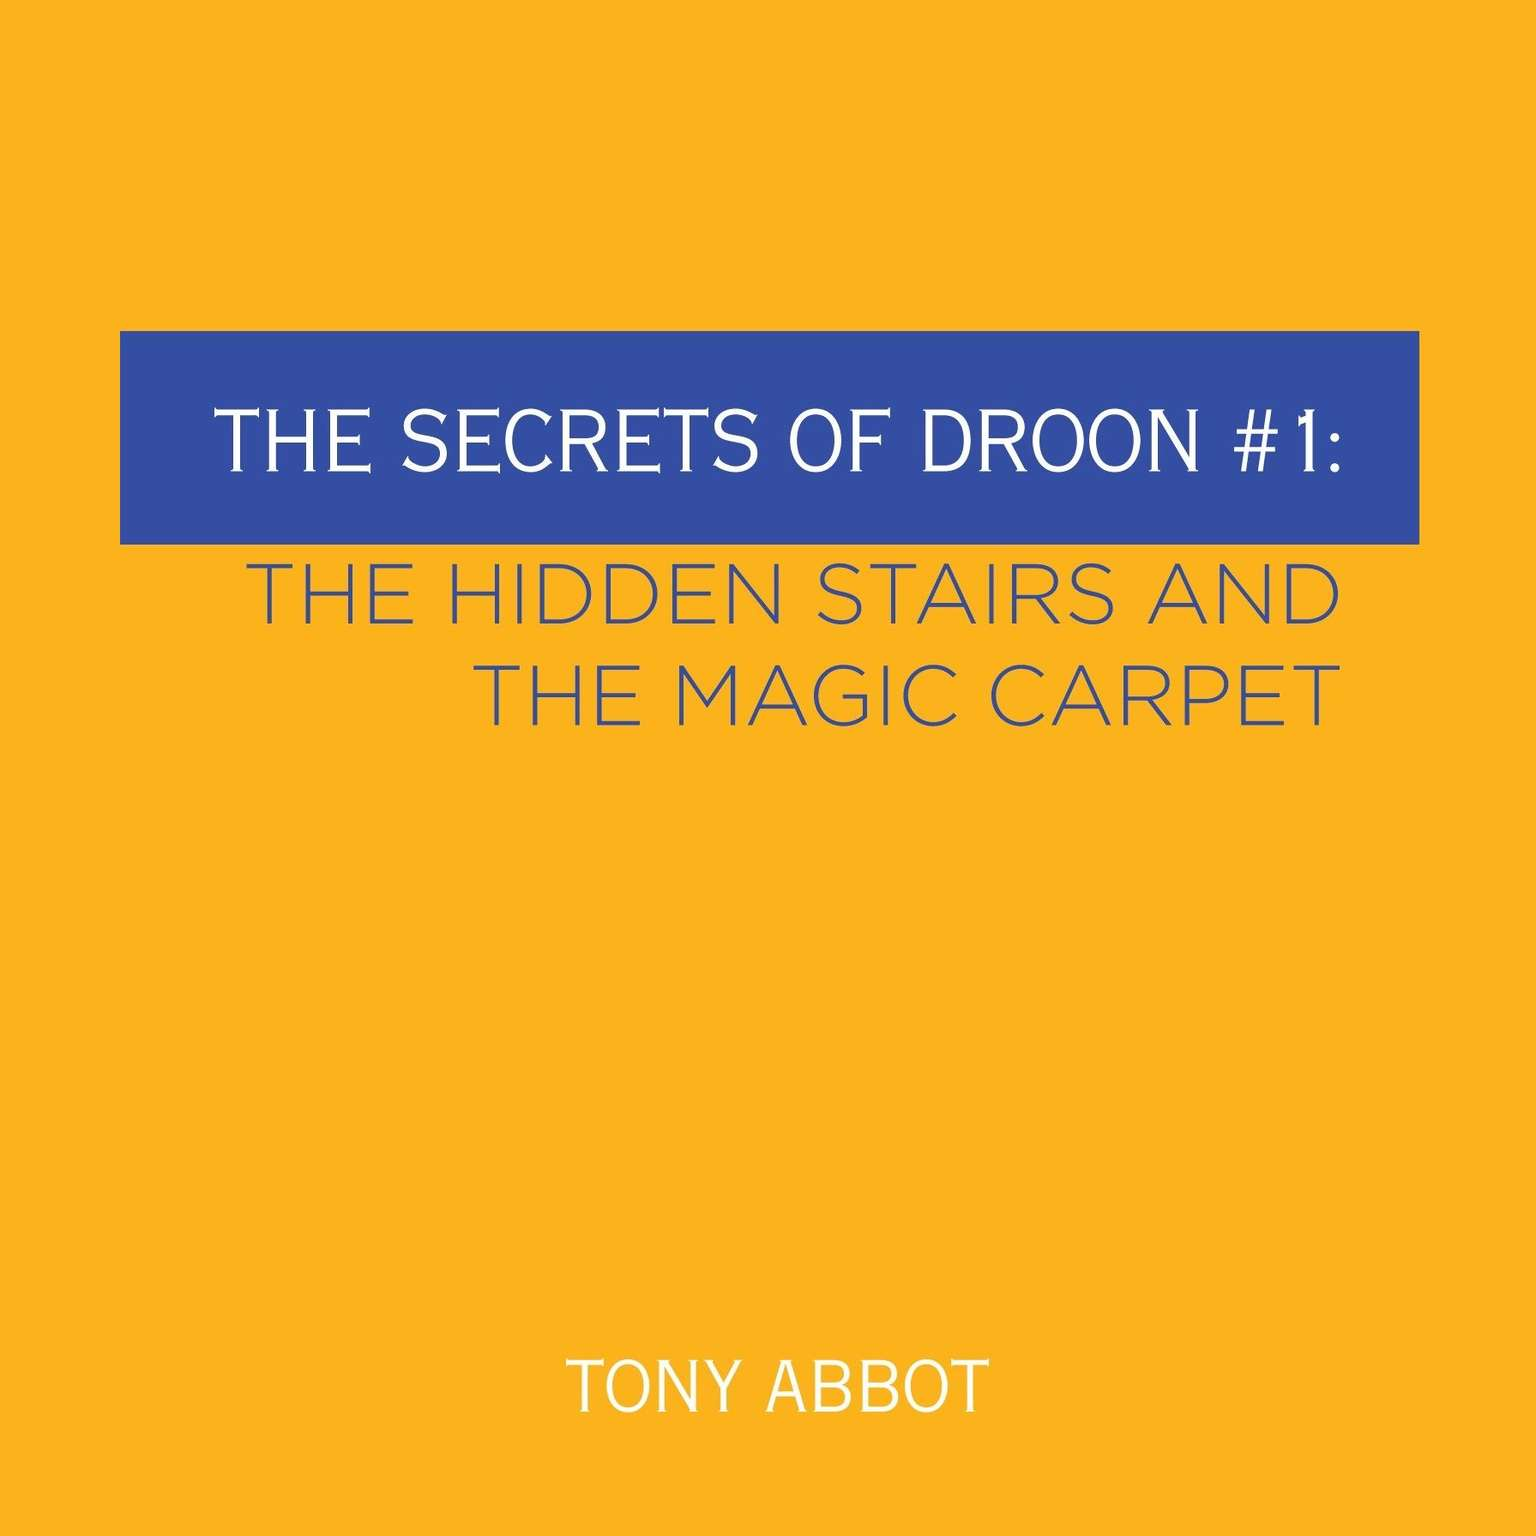 Printable The Secrets of Droon #1: The Hidden Stairs and The Magic Carpet Audiobook Cover Art